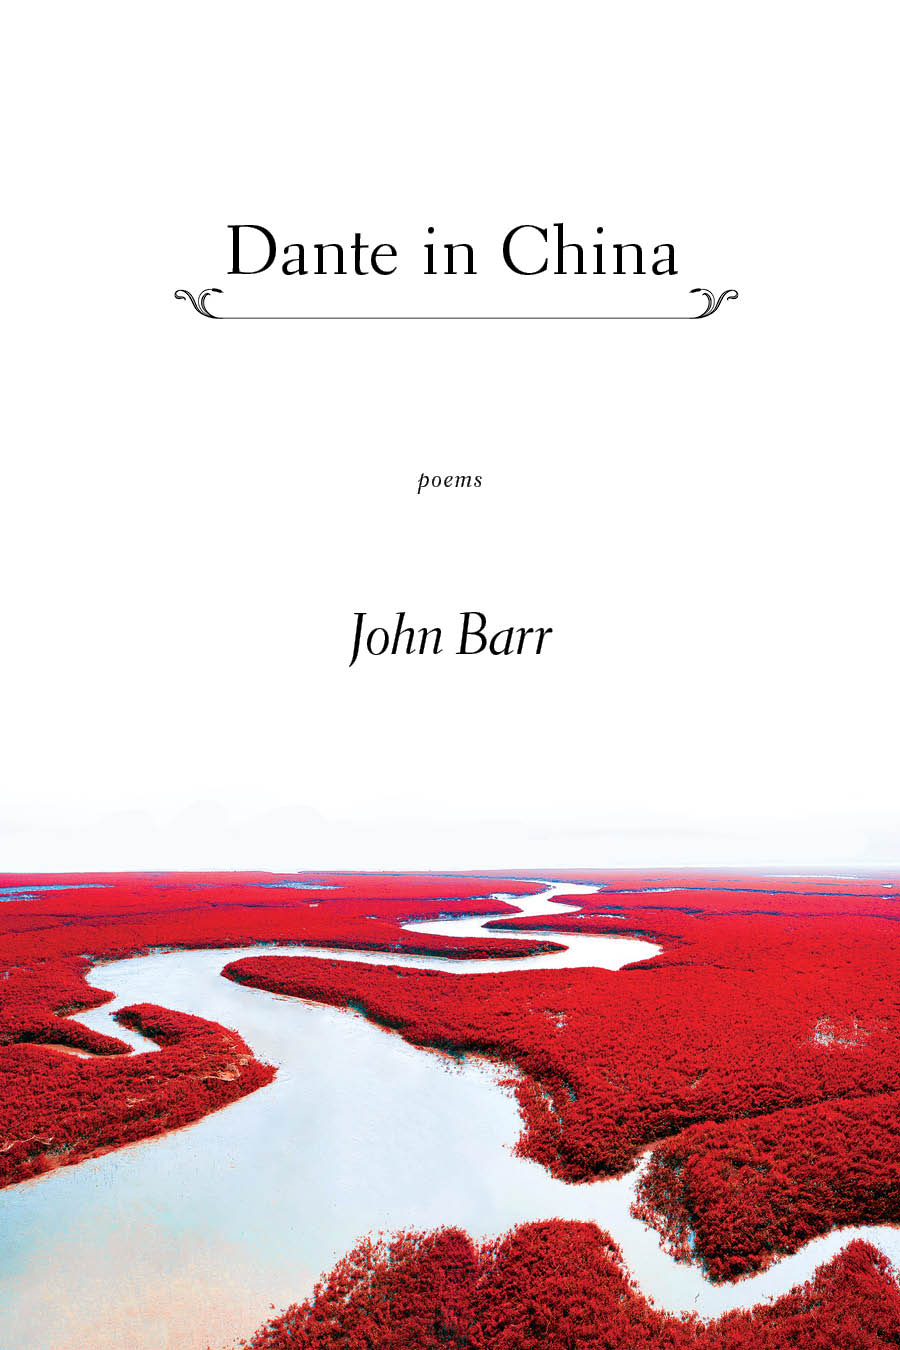 A photograph of a river with red fauna surrounding it and black script that reads Dante in China poems by John Barr.